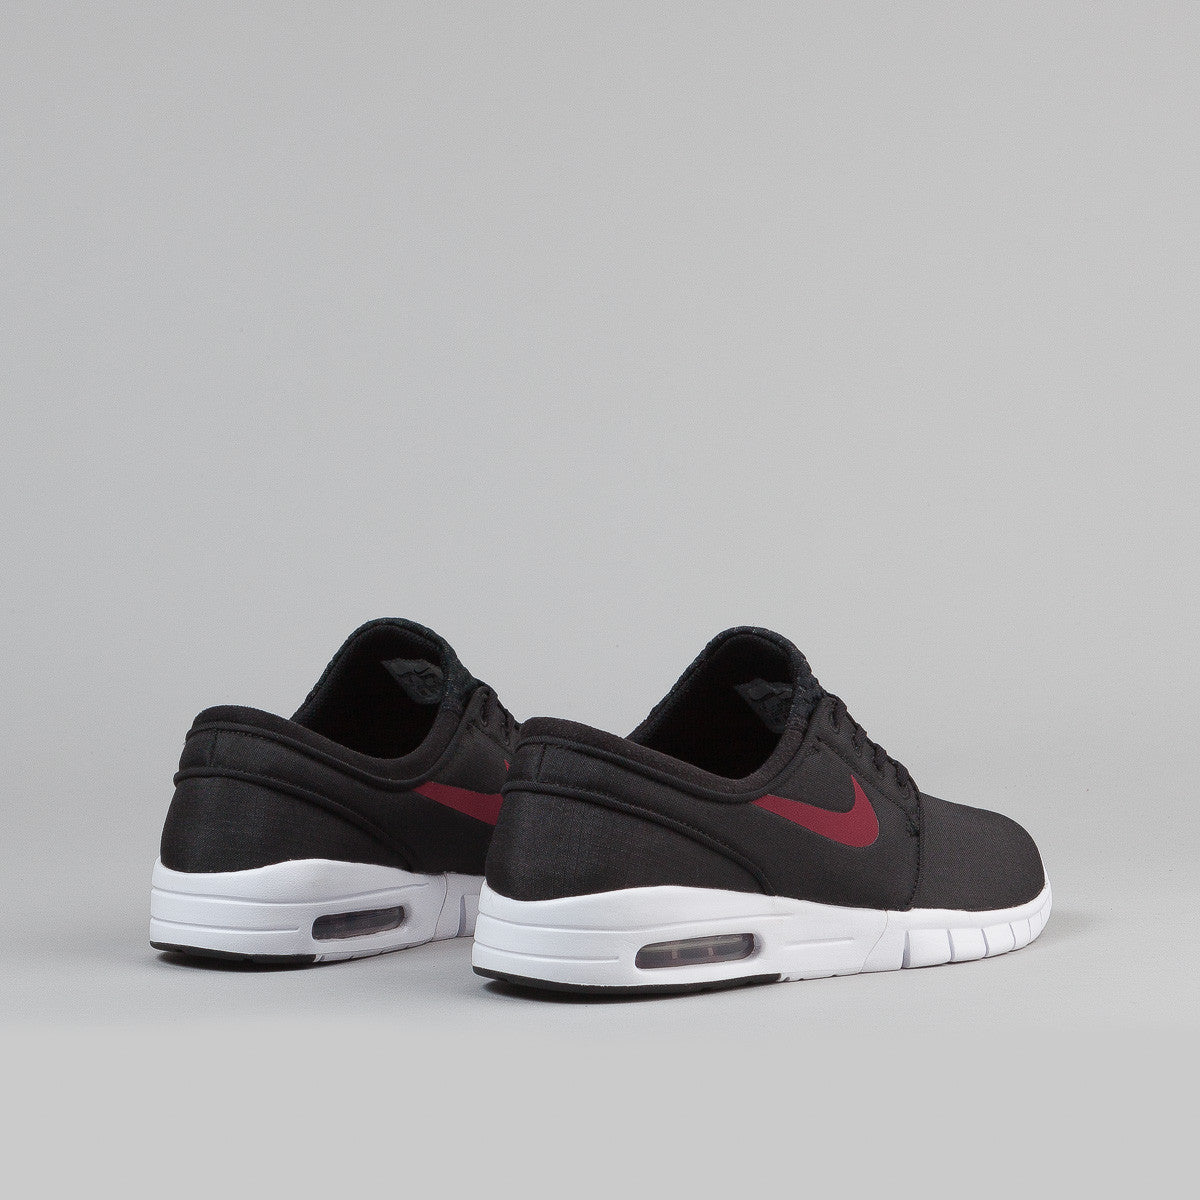 nike sb stefan janoski max shoes black team red white flatspot. Black Bedroom Furniture Sets. Home Design Ideas